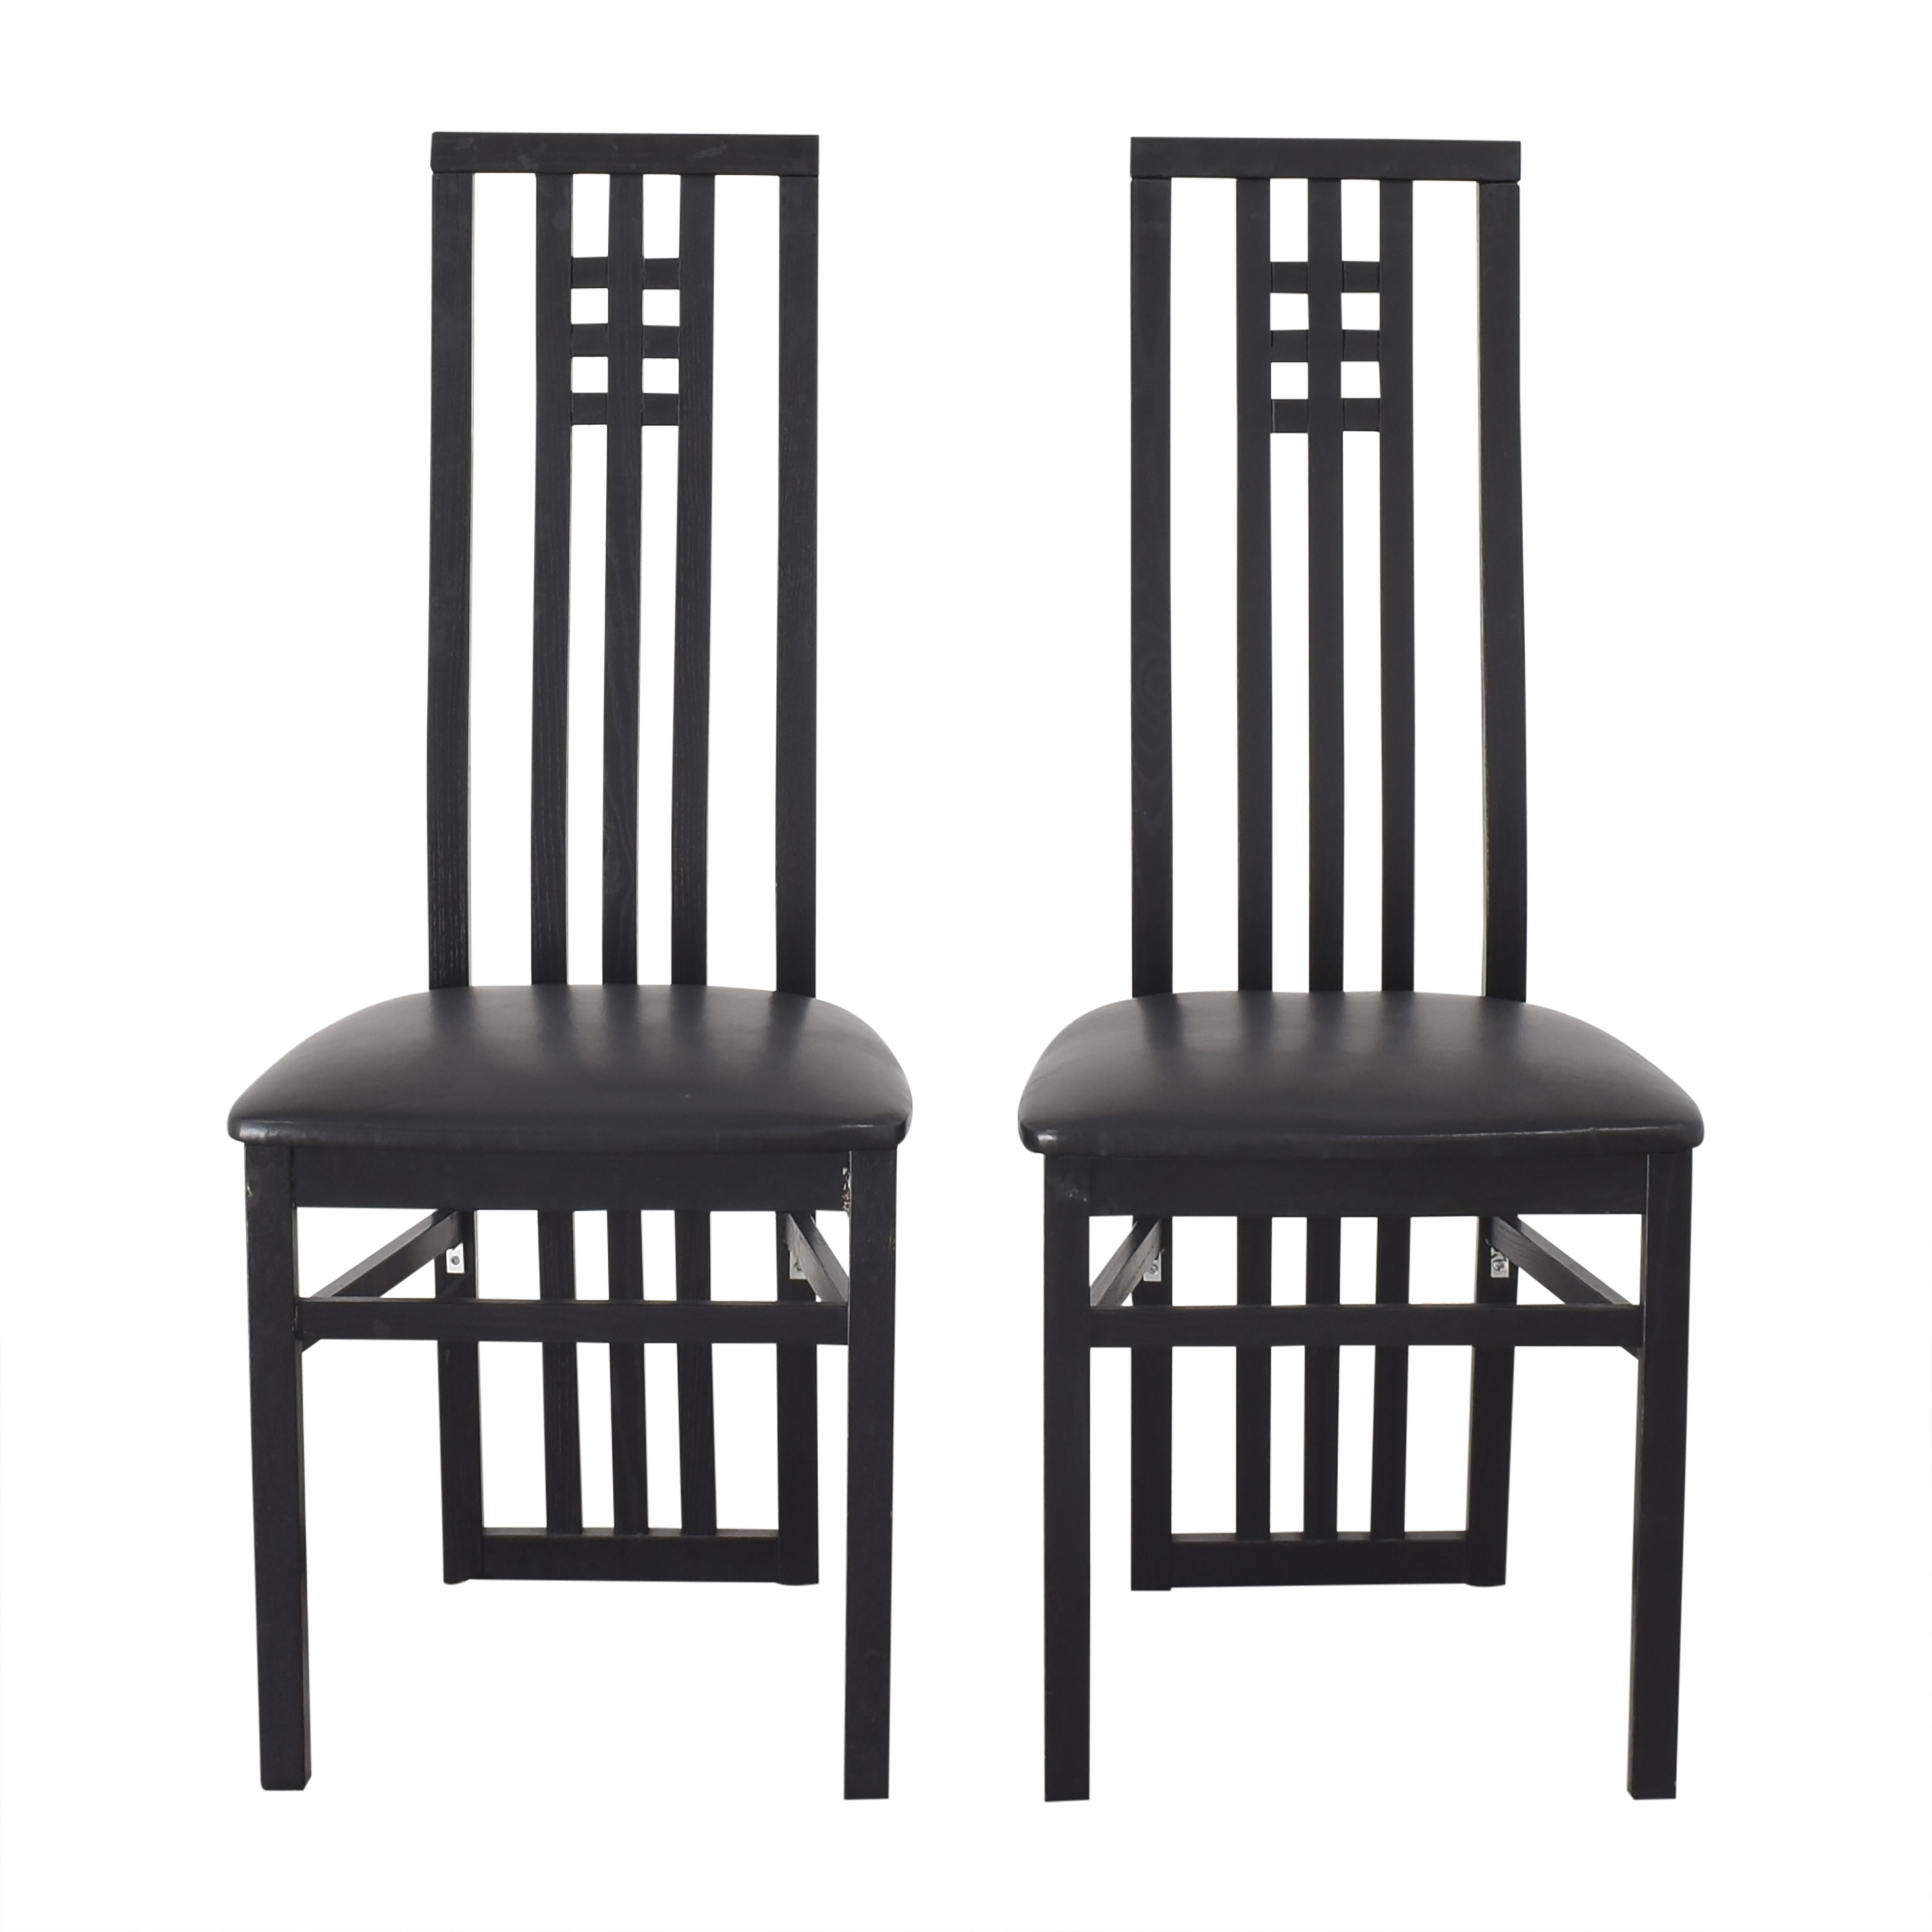 The Conran Shop The Conran Shop Mackintosh-Style Dining Chairs Chairs